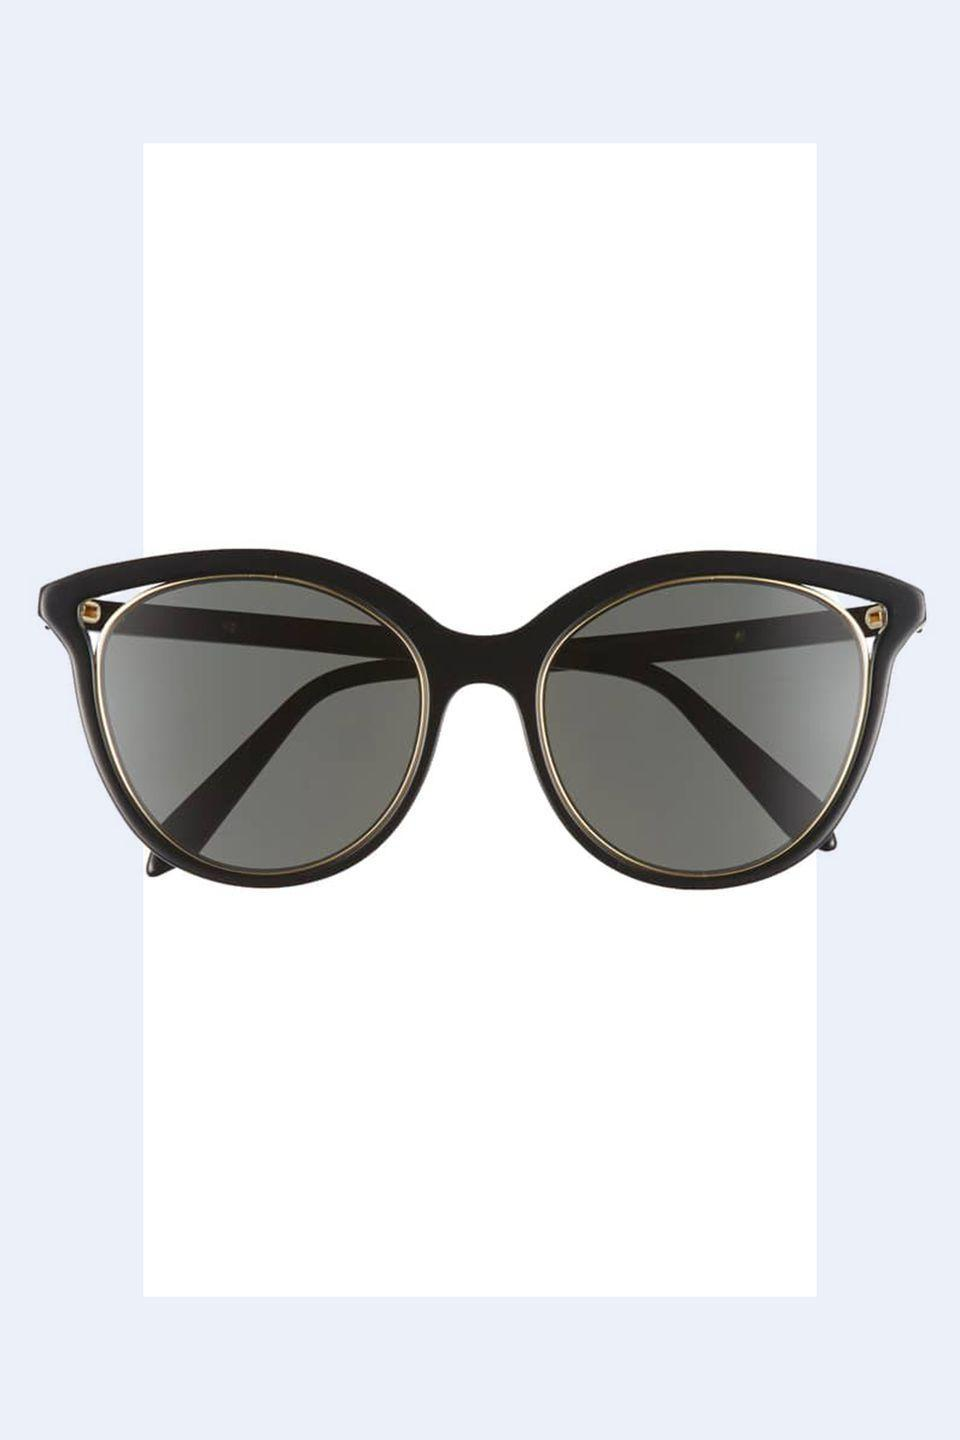 """<p><a rel=""""nofollow noopener"""" href=""""https://shop.nordstrom.com/s/victoria-beckham-cutaway-kitten-54mm-cat-eye-sunglasses/4713126?origin=keywordsearch-personalizedsort&breadcrumb=Home%2FAll%20Results&color=black%2F%20gold"""" target=""""_blank"""" data-ylk=""""slk:SHOP NOW"""" class=""""link rapid-noclick-resp"""">SHOP NOW</a> <em>Victoria Beckham Sunglasses, $355</em></p><p>""""Keep all of the <strong>little details</strong> crisp and they will make all the difference in the world."""" -<em><a rel=""""nofollow noopener"""" href=""""https://www.juliaperrystyle.com/"""" target=""""_blank"""" data-ylk=""""slk:Julia Perry"""" class=""""link rapid-noclick-resp"""">Julia Perry</a></em><br></p>"""